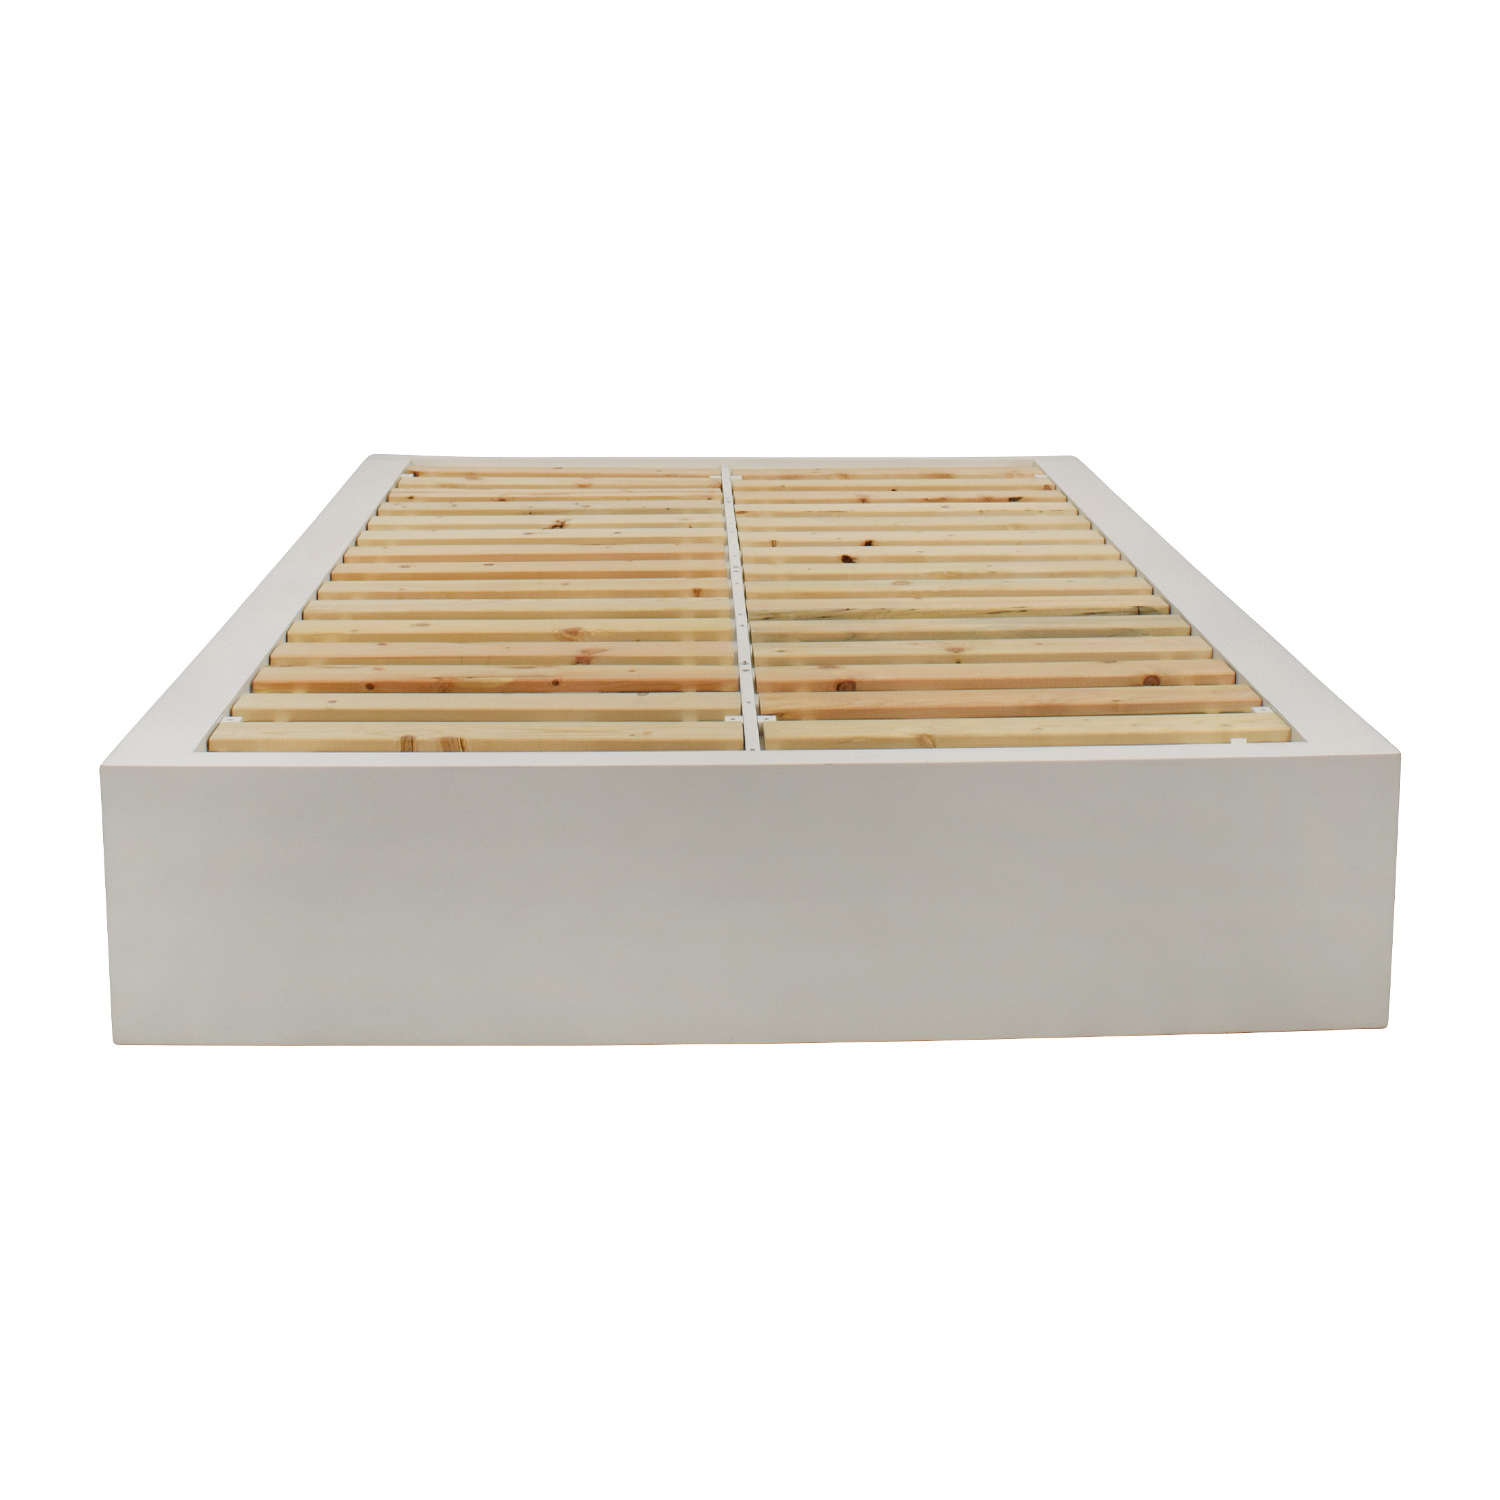 West Elm West Elm White Storage Platform Queen